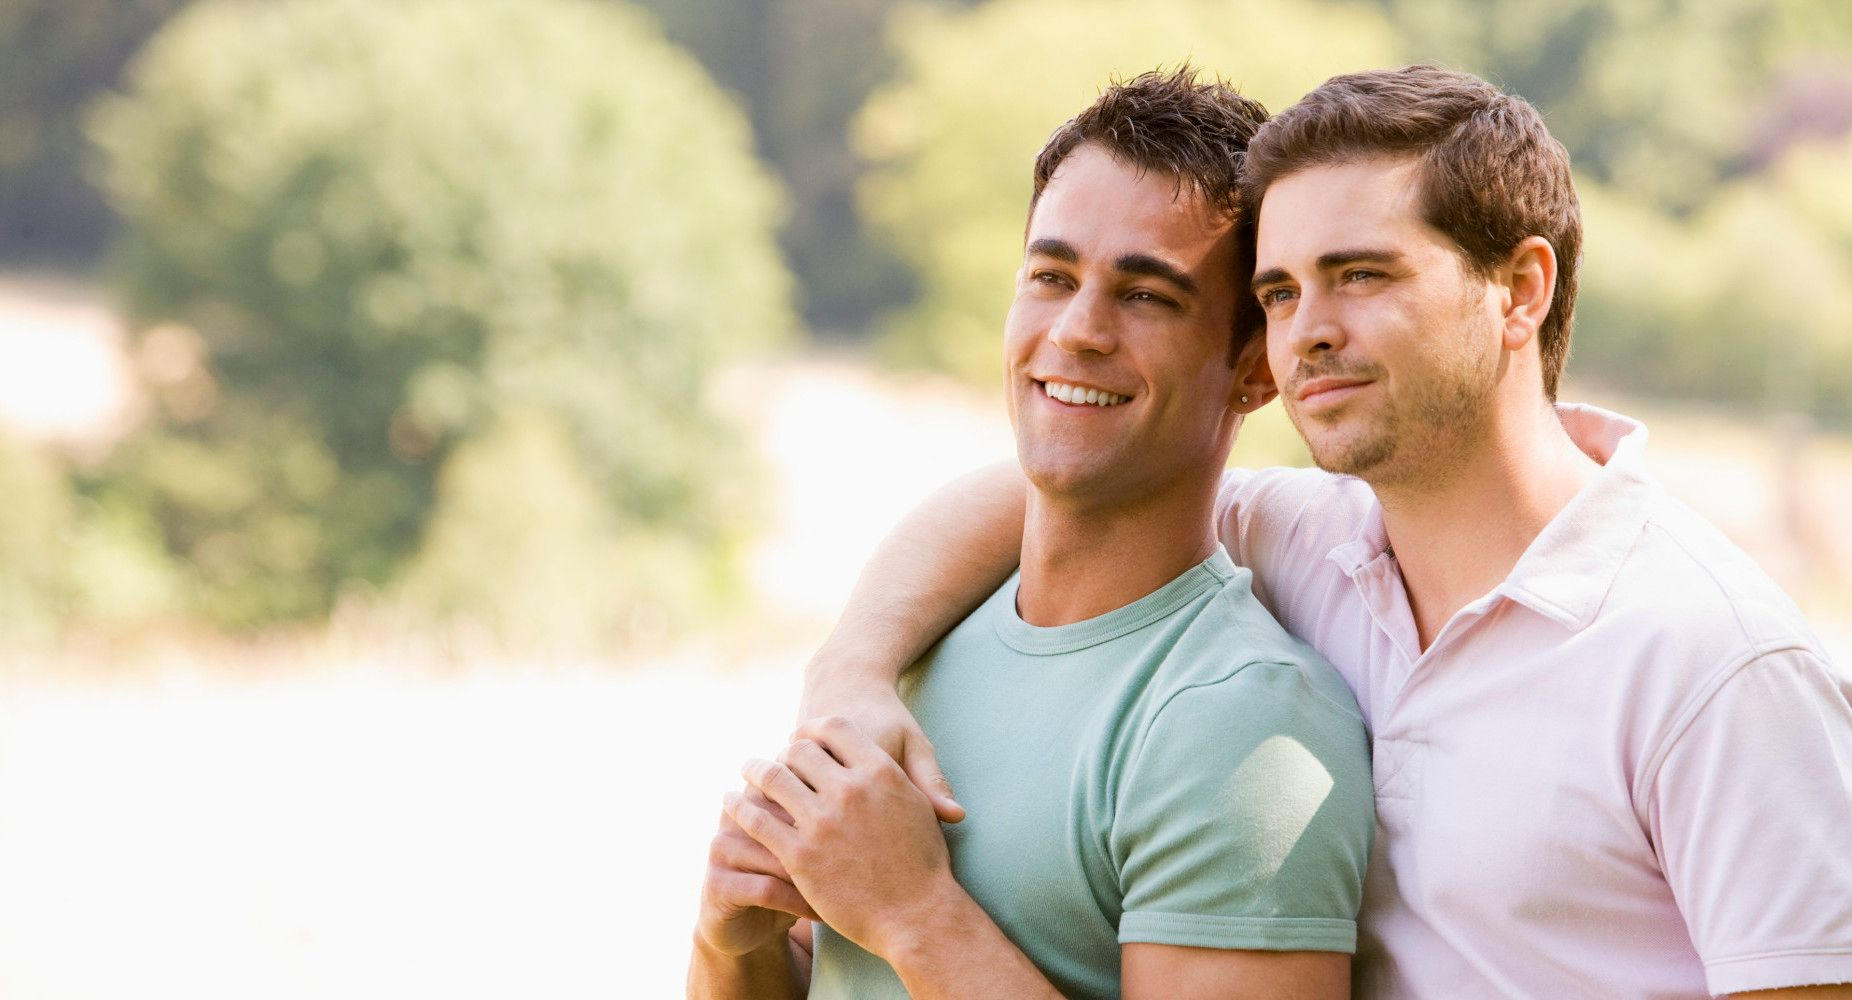 Hookup a guy with multiple partners